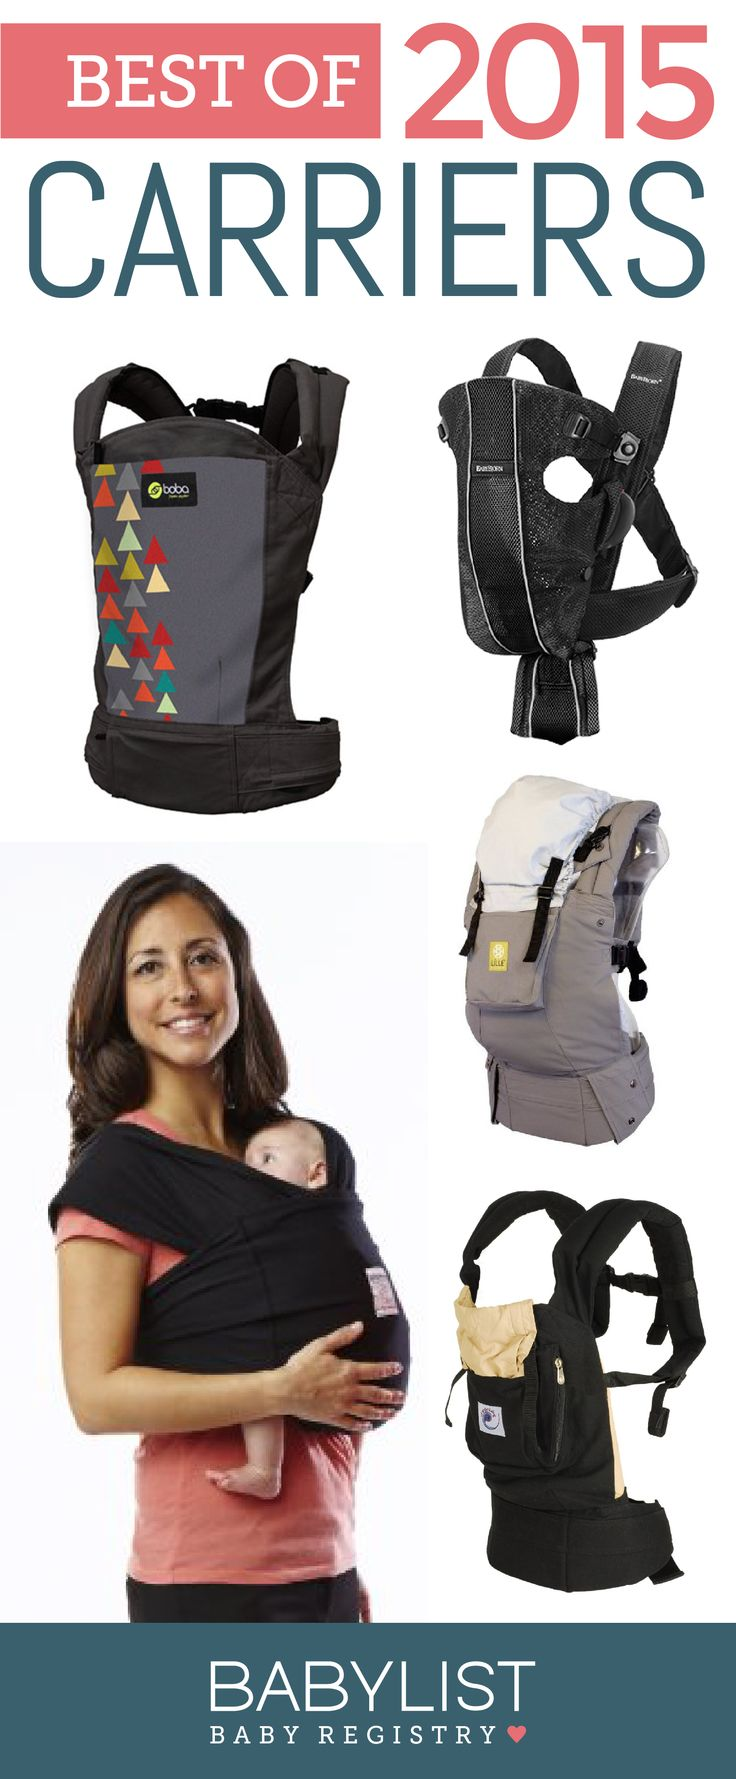 Our parents shared that a carrier was their favorite baby product- no matter the type or brand. Check out our top picks here!